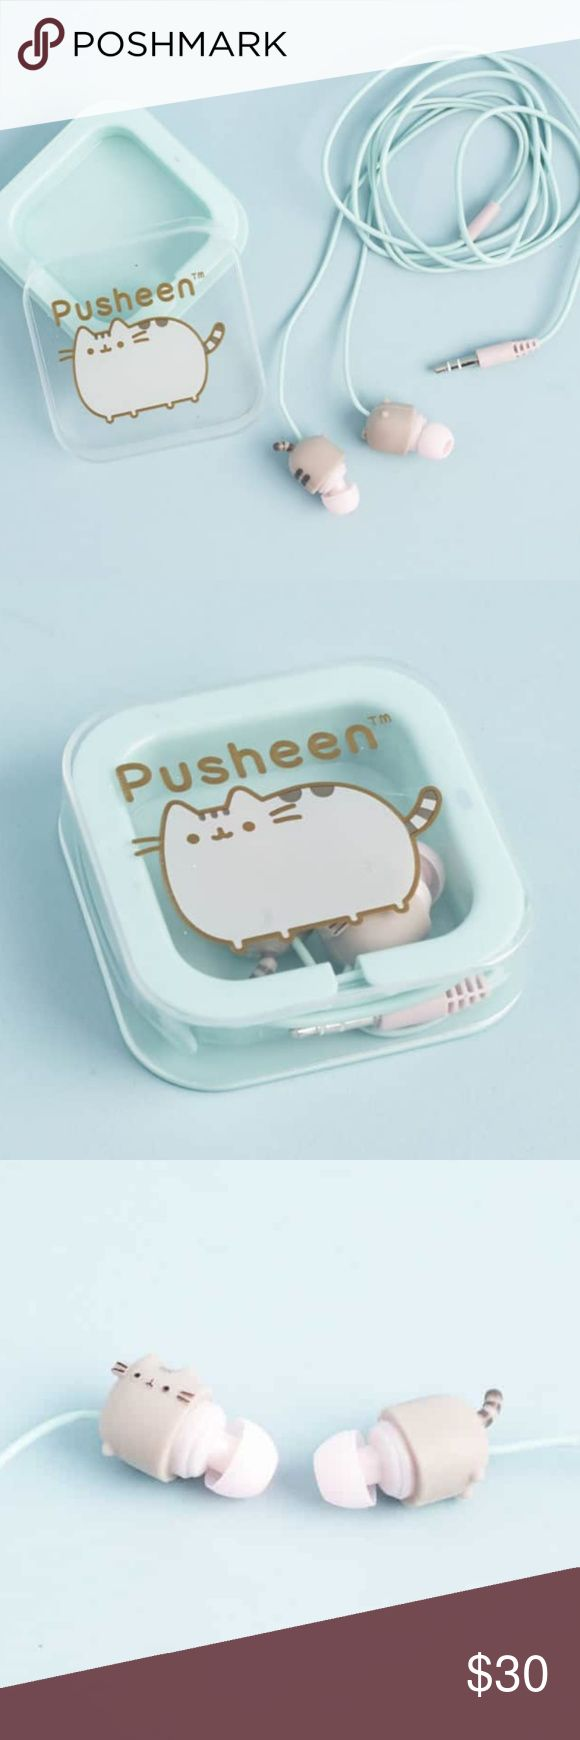 Pusheen Exclusive Headphones Exclusive headphones from summer 2017 subscription box Brand new! Cute little Pusheens on the ear buds Great holiday gift! Open to bundle Pusheen items together! Open to offers! Pusheen Accessories